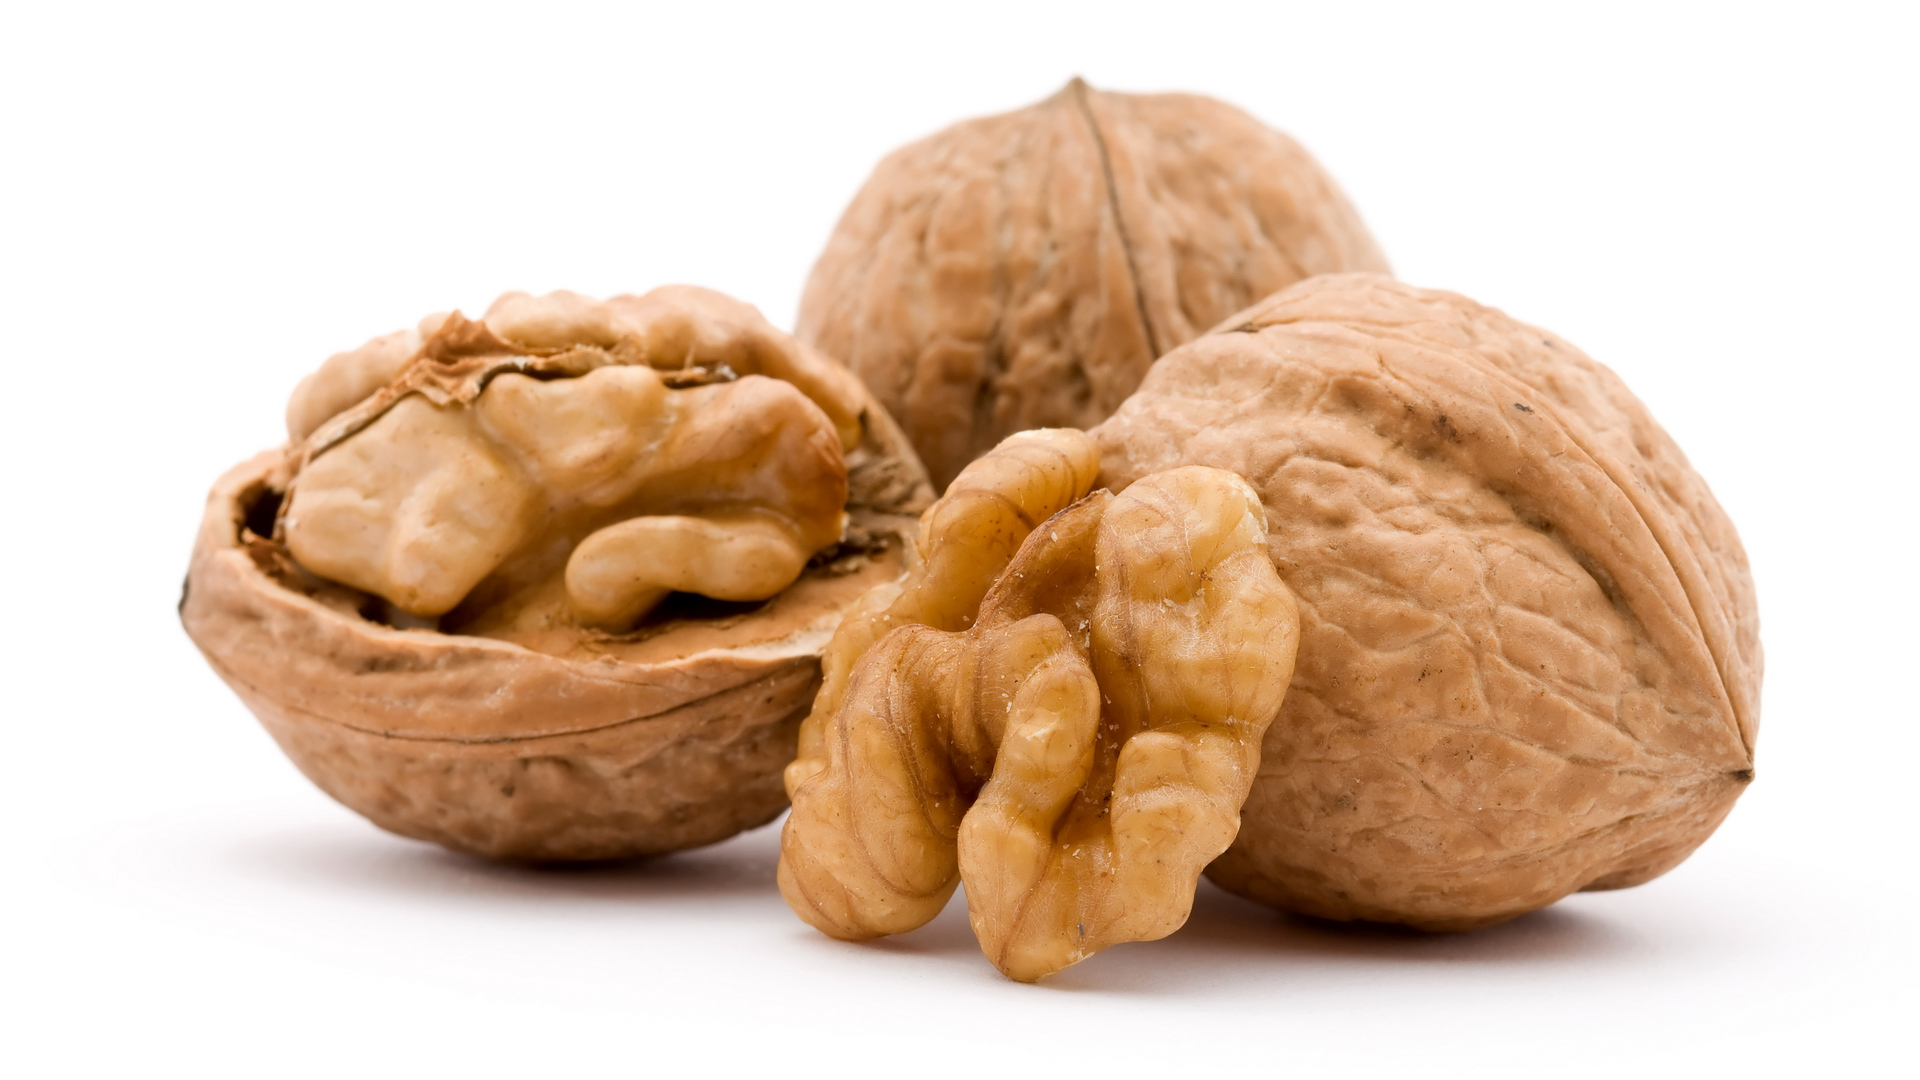 dry walnut fruit studio isolated closeup